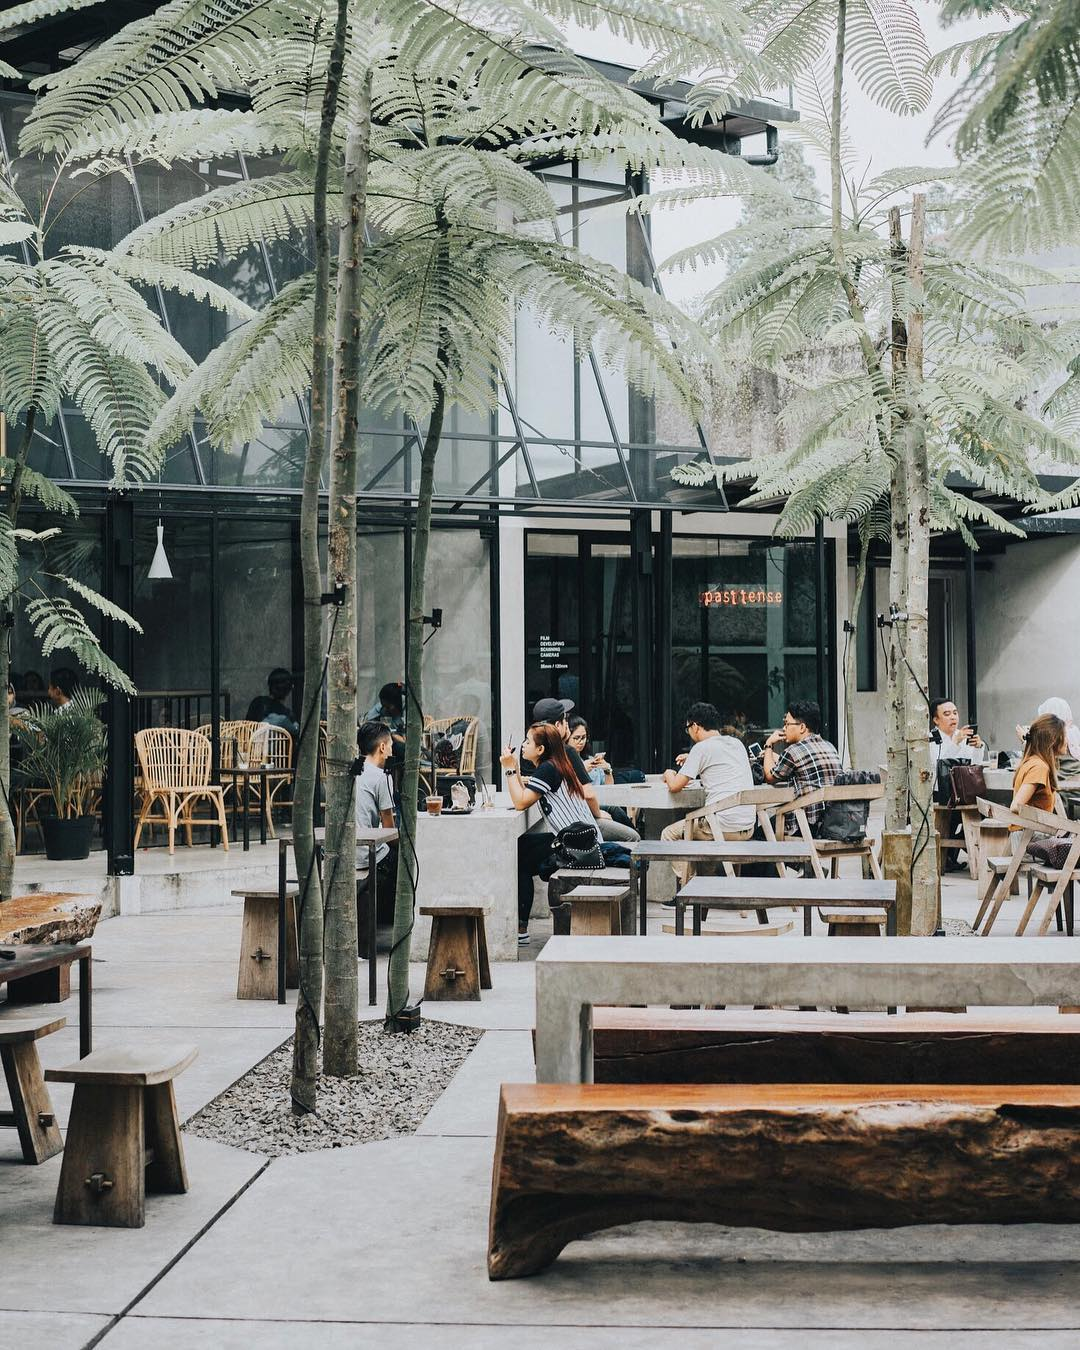 Jardin Cafe Bandung Review: 10+ Recommended Hangout Places In Bandung